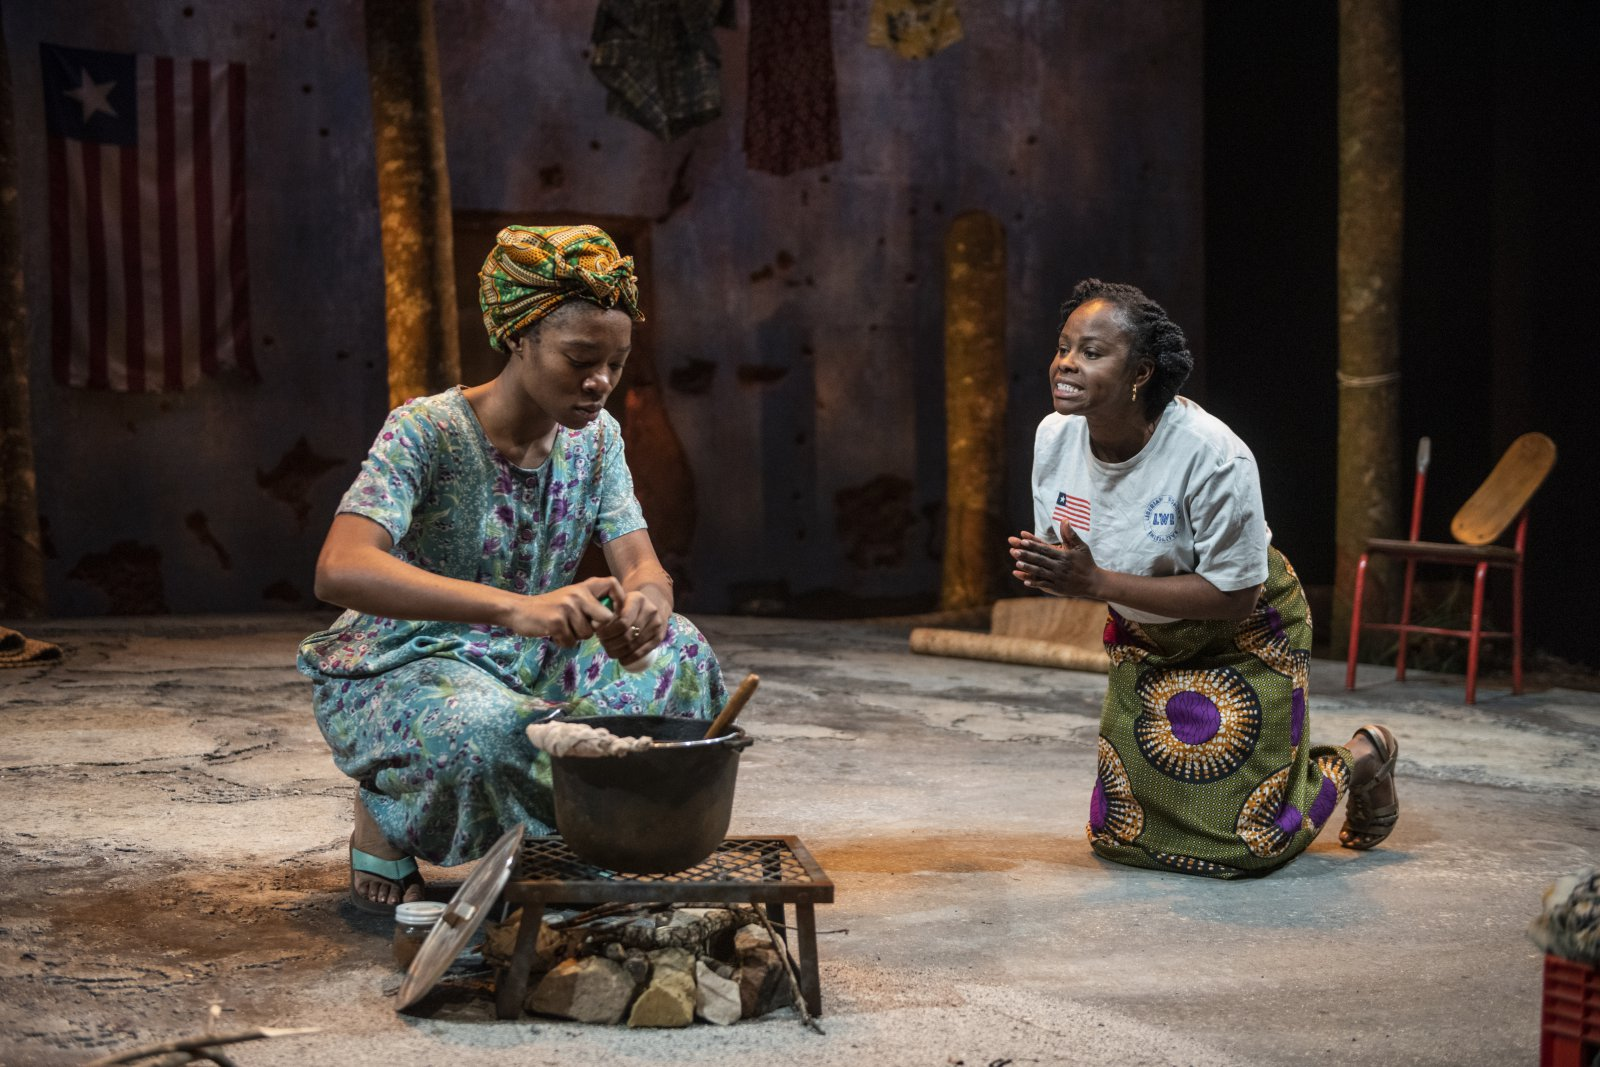 Milwaukee Repertory Theater presents Eclipsed in the Quadracci Powerhouse March 3 – March 29, 2020. Left to right: Jacqueline Nwabueze and Nancy Moricette.